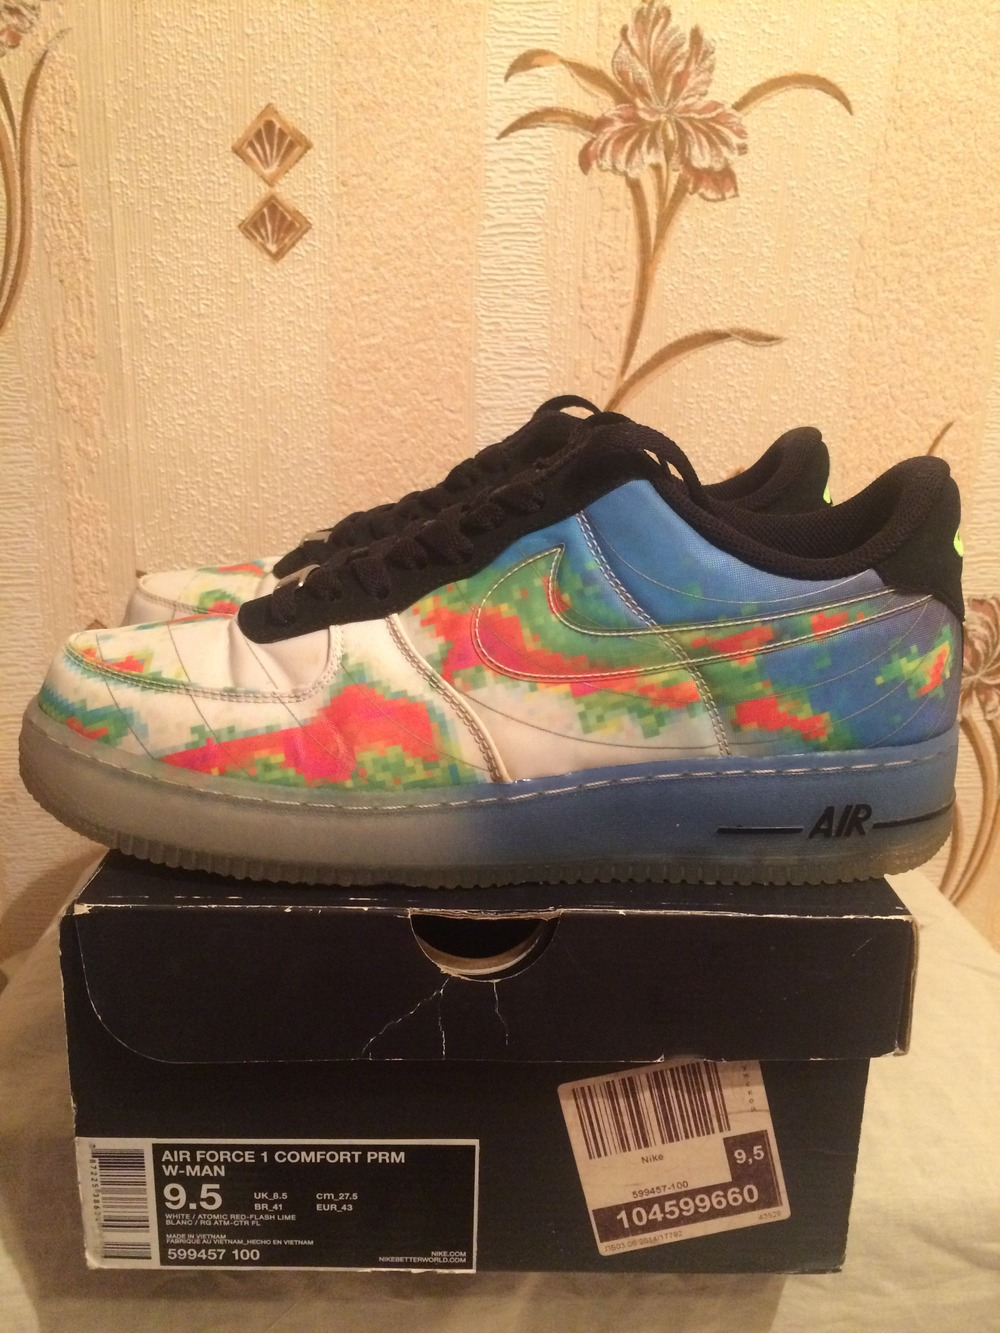 nike air force 1 low weatherman for sale nike air max thea pas cher homme. Black Bedroom Furniture Sets. Home Design Ideas